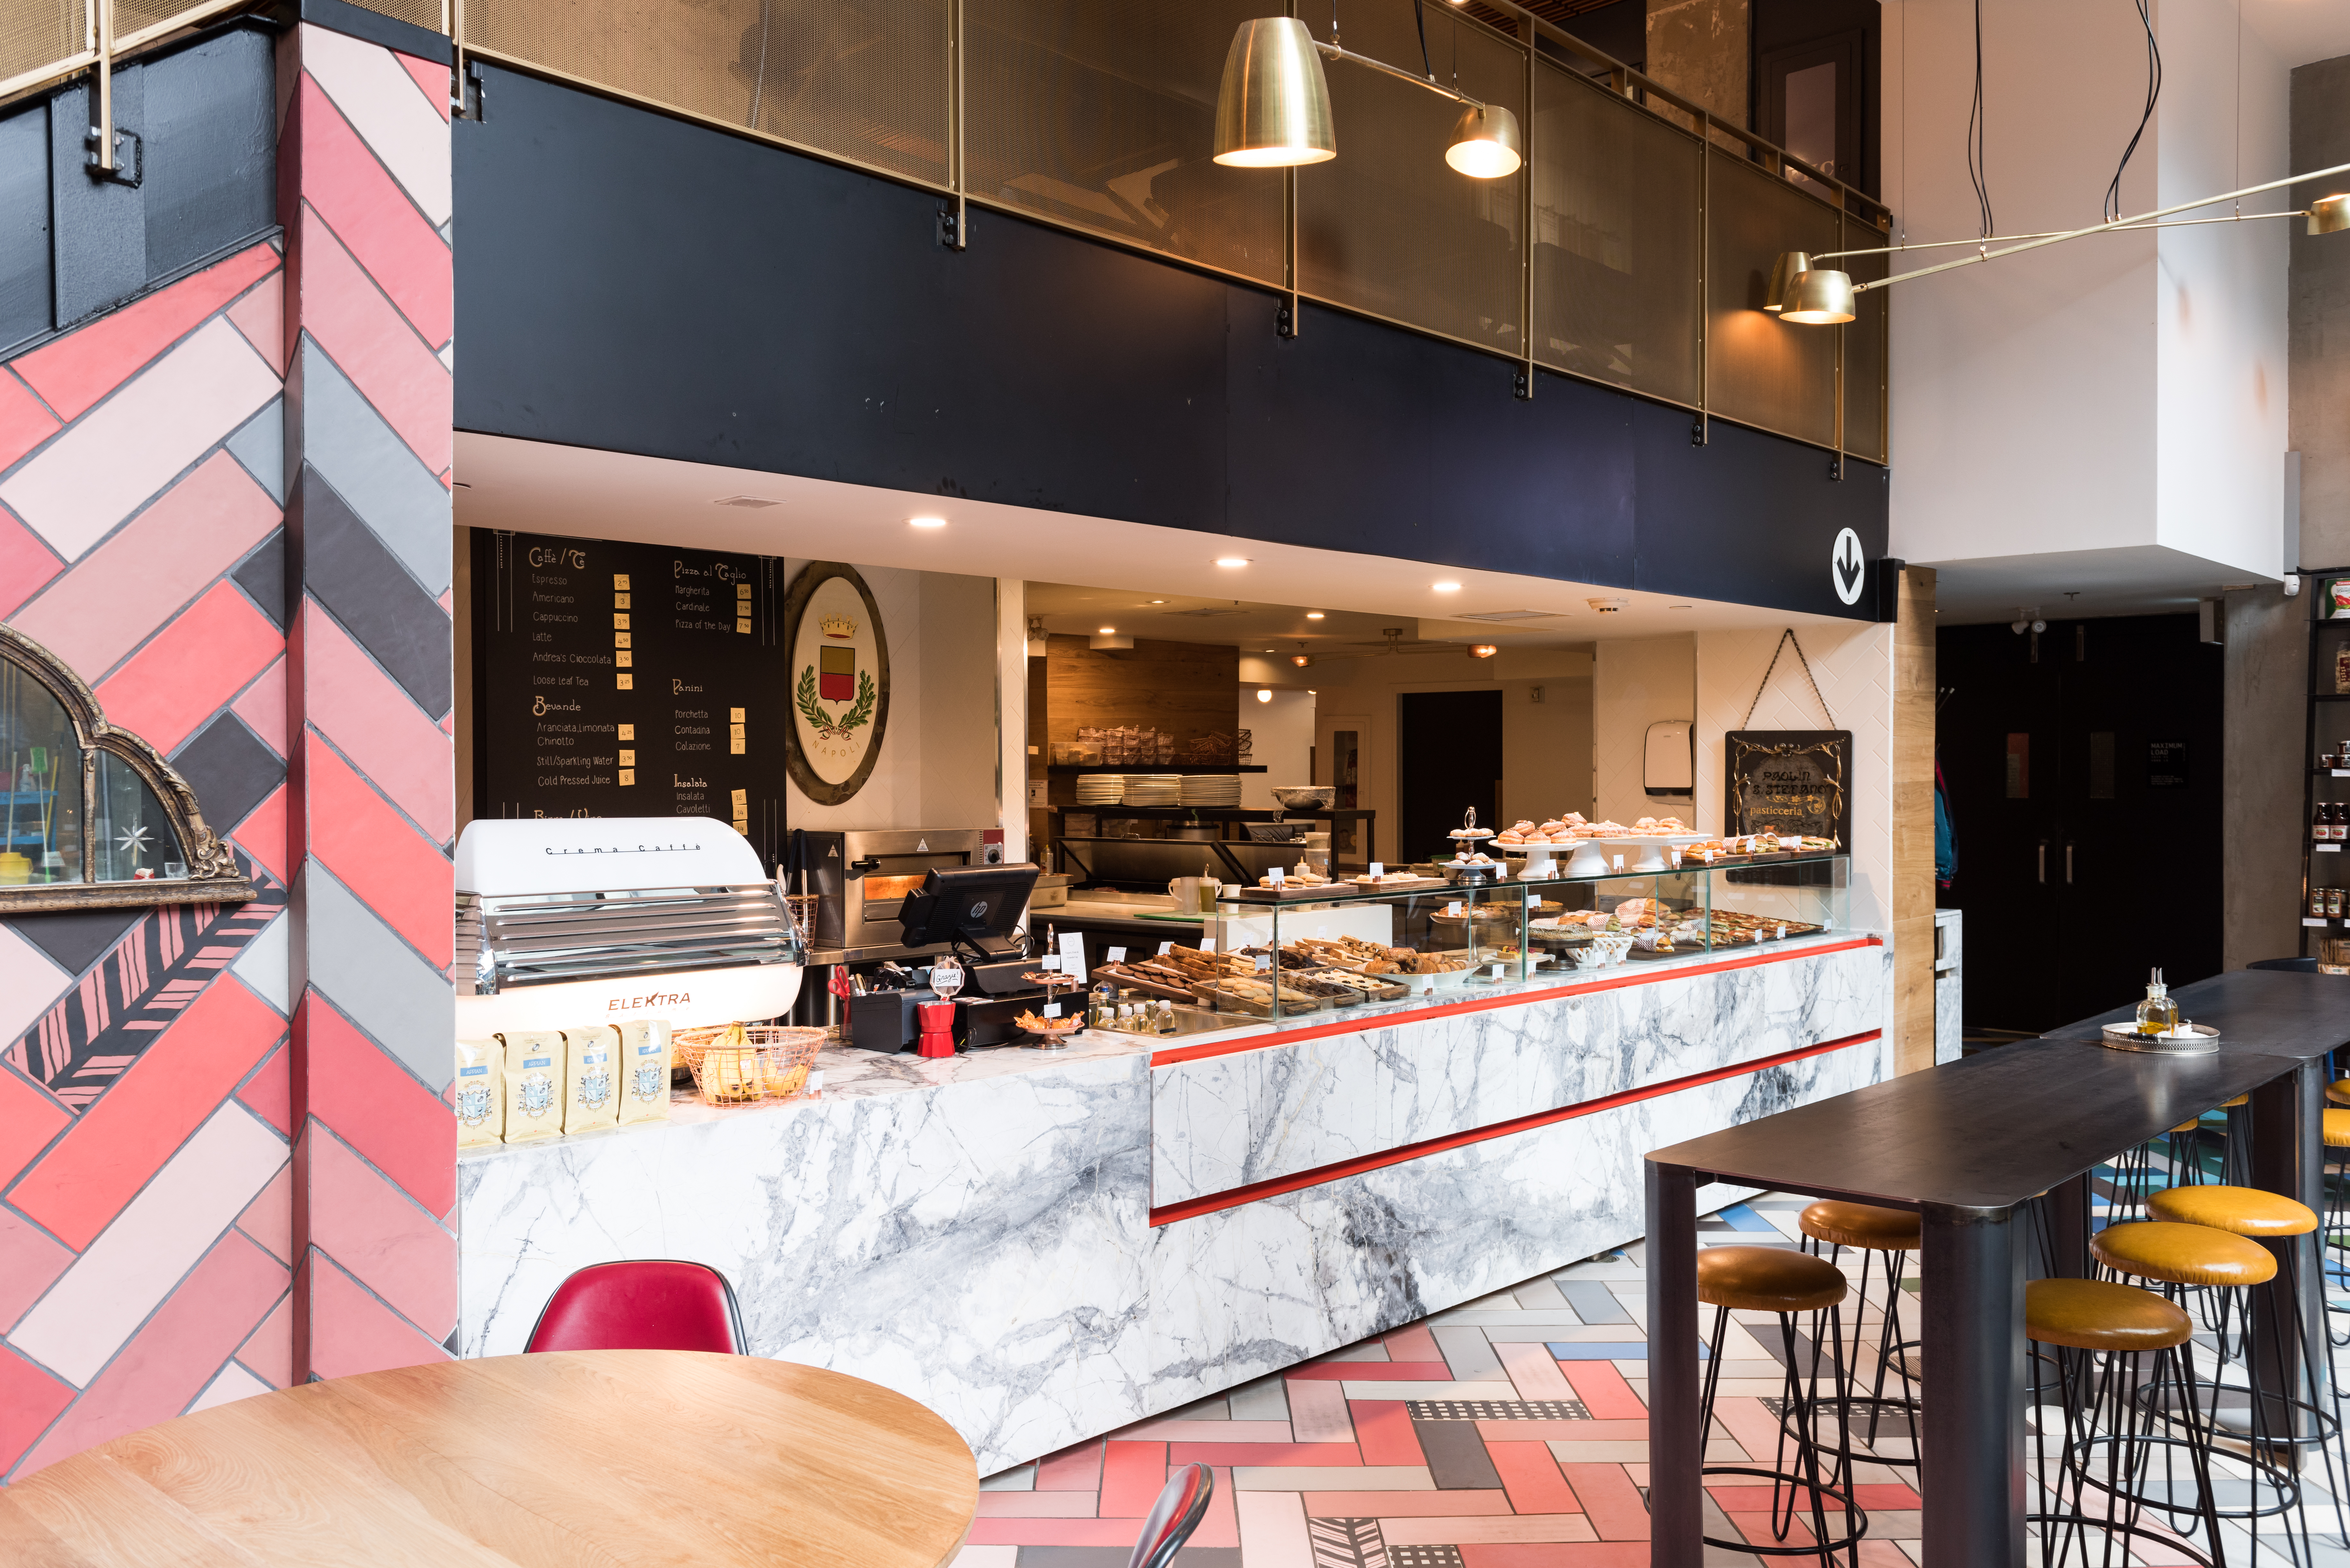 restaurant splendid grout stylist cost luxury epoxy and uk removal residential floor poured kitchen flooring countertops